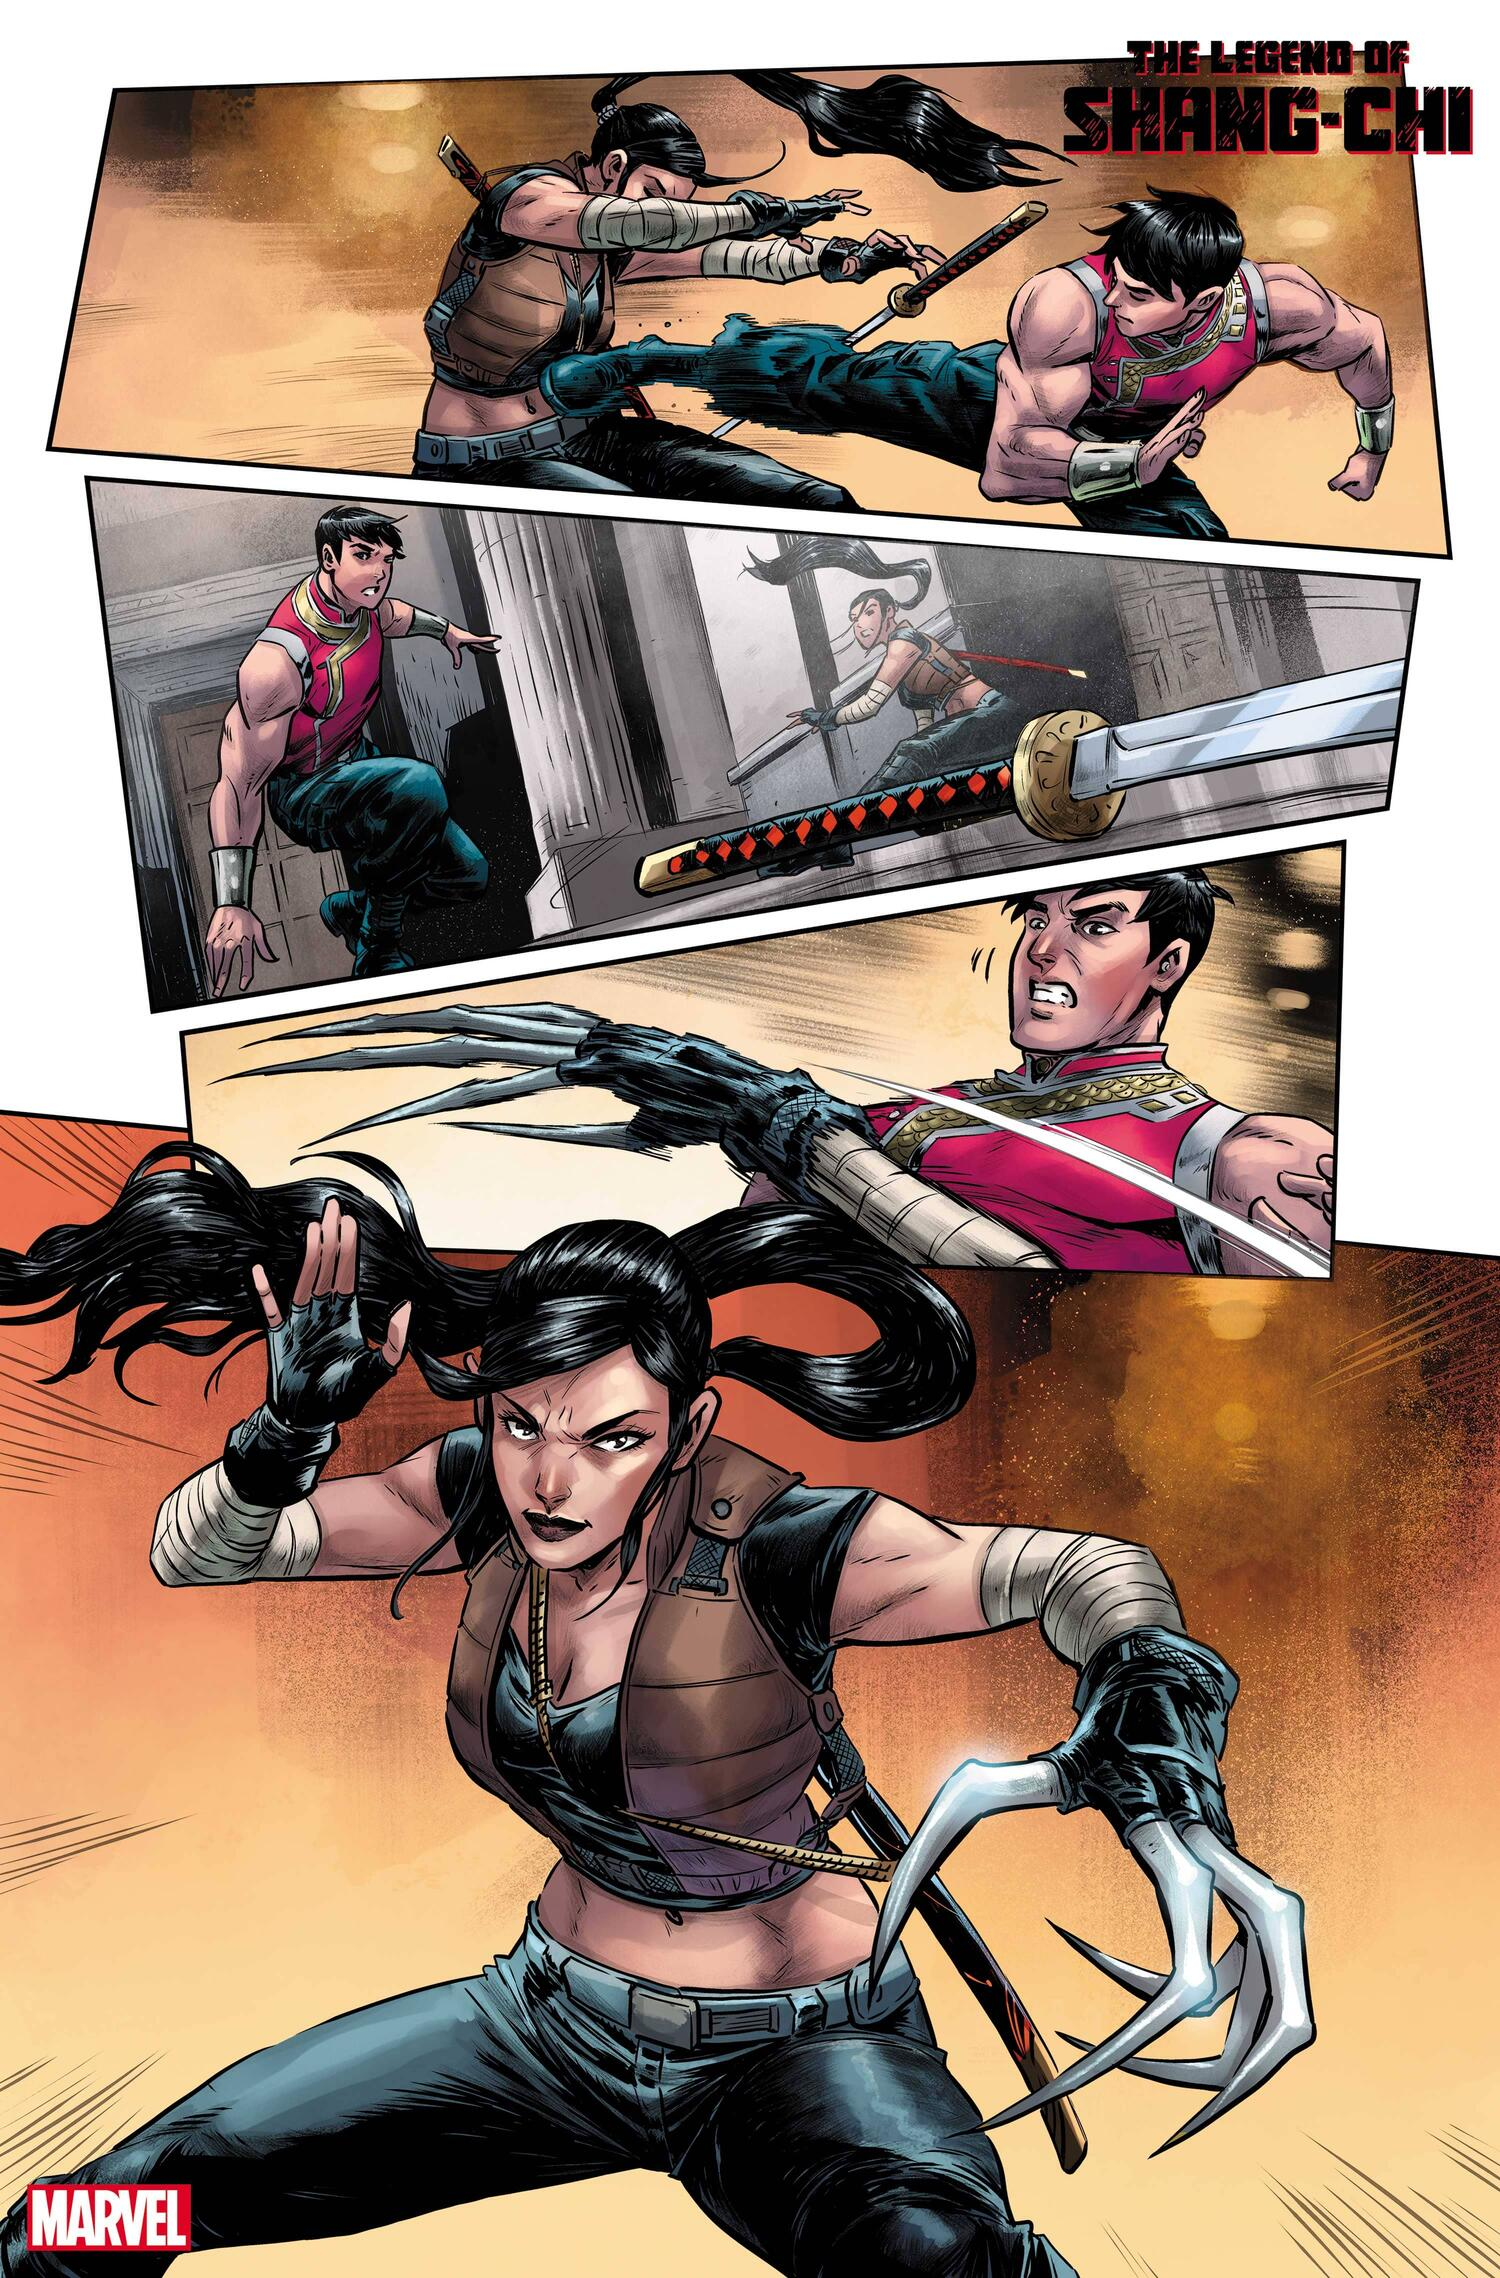 THE LEGEND OF SHANG-CHI #1 art by Andie Tong with colors by Rachelle Rosenberg